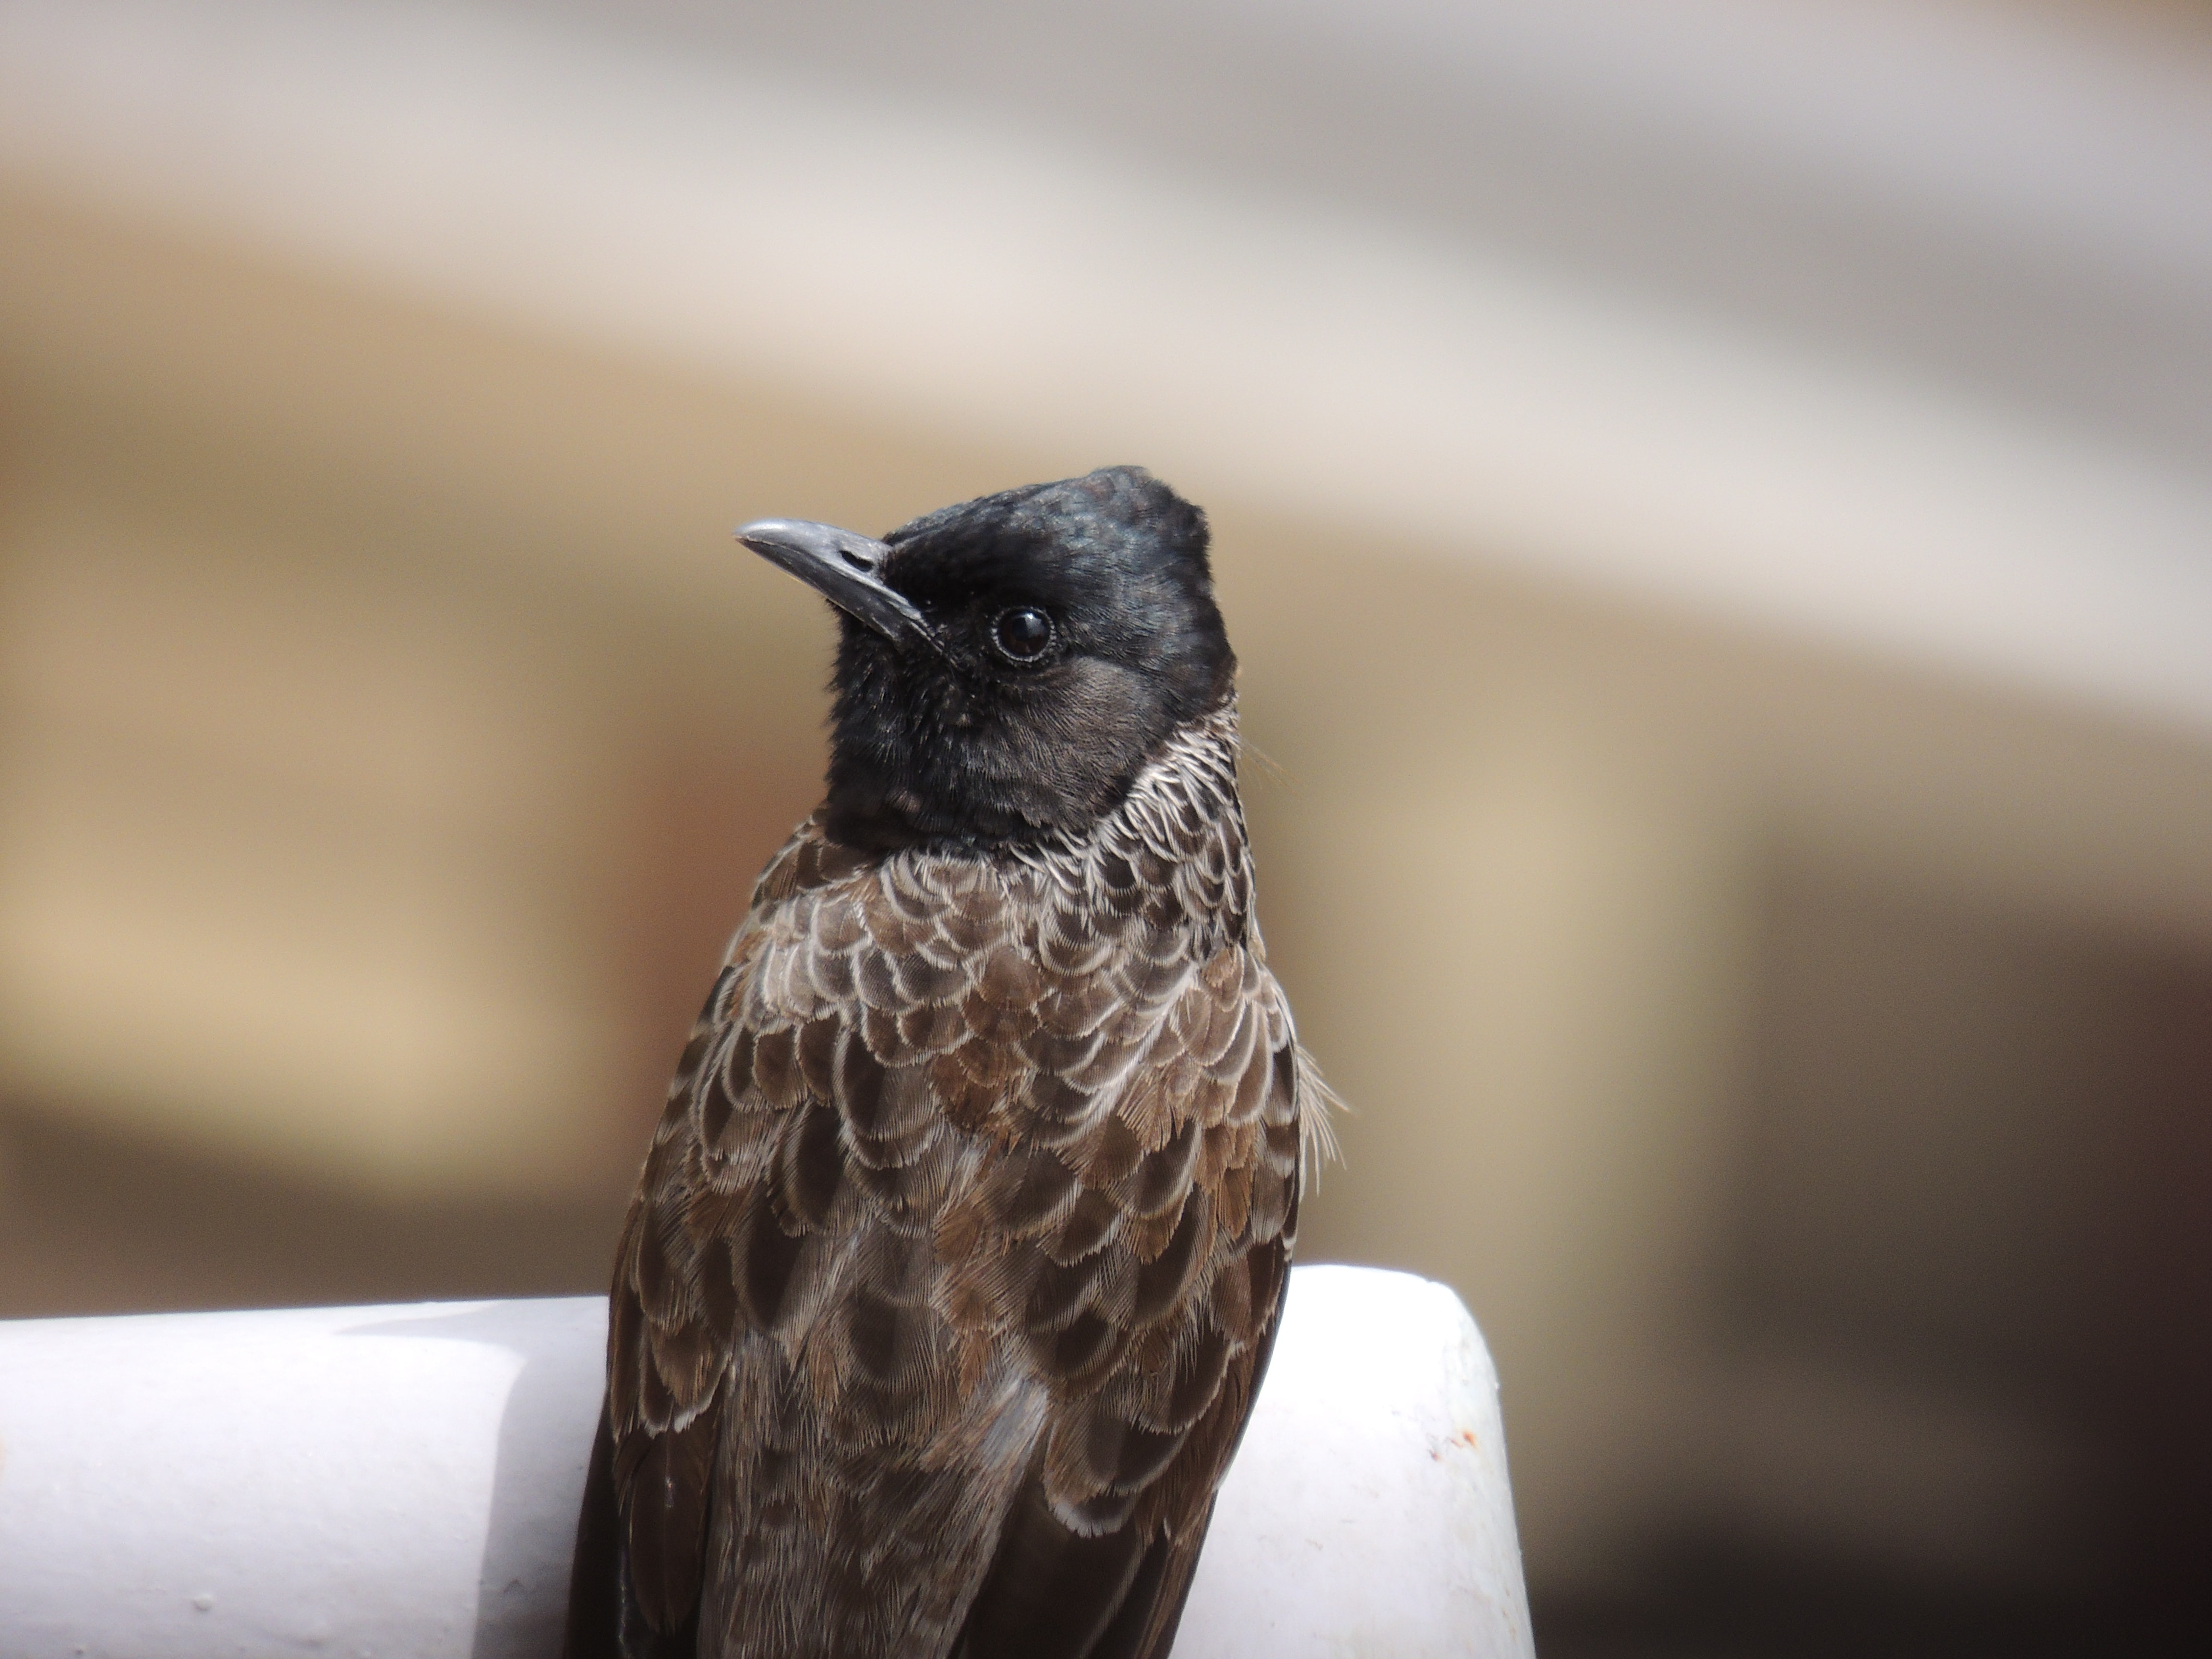 shallow focus of brown and black bird during daytime